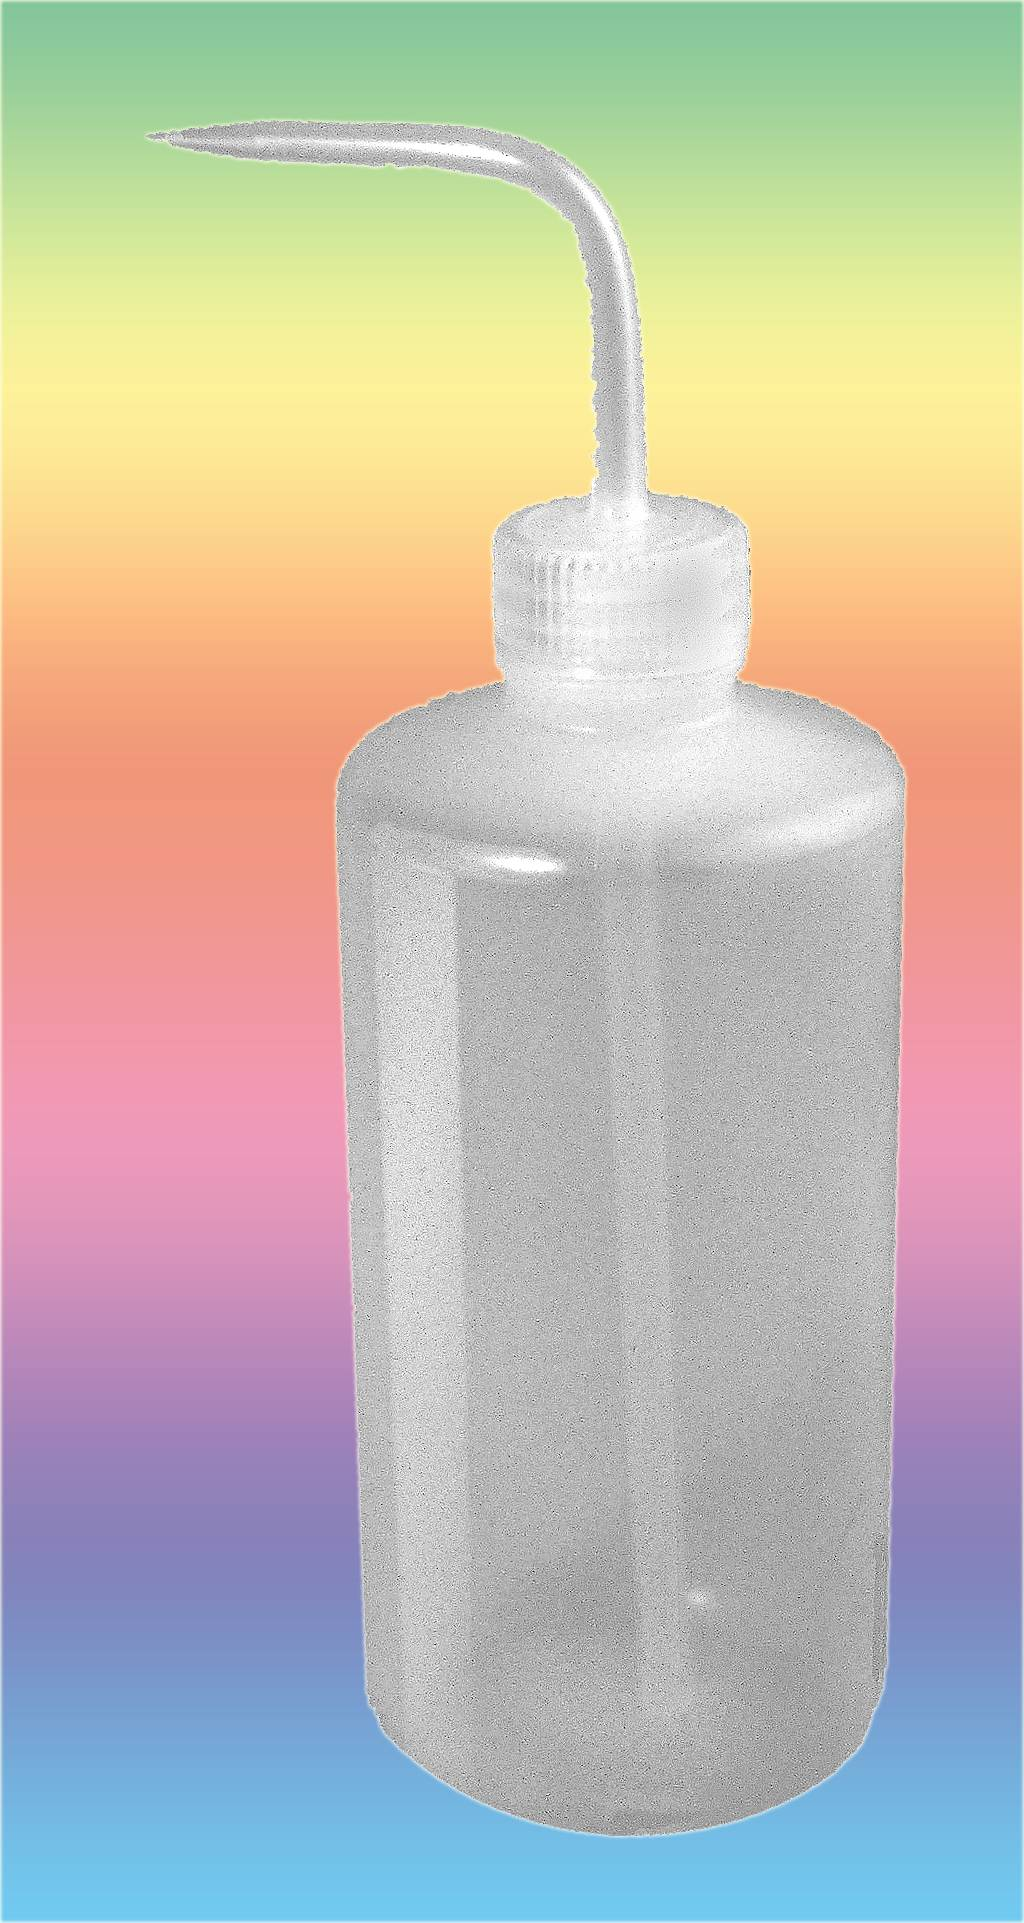 WASH-UP BOTTLE - 16 oz. Nalgene